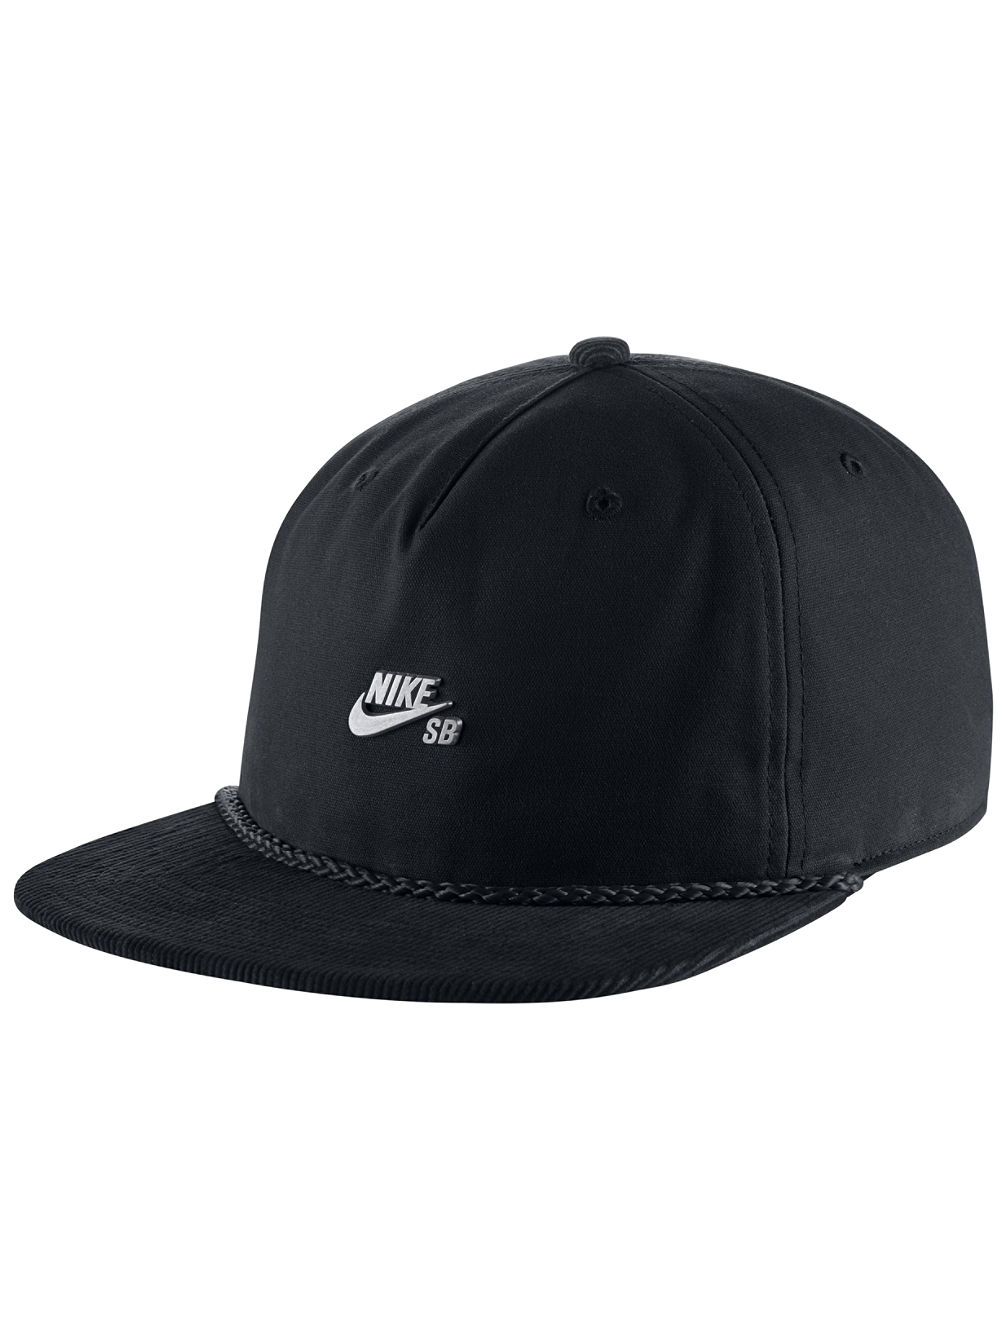 5949d1ef61f Buy Nike SB Waxed Canvas Pro Cap online at Blue Tomato